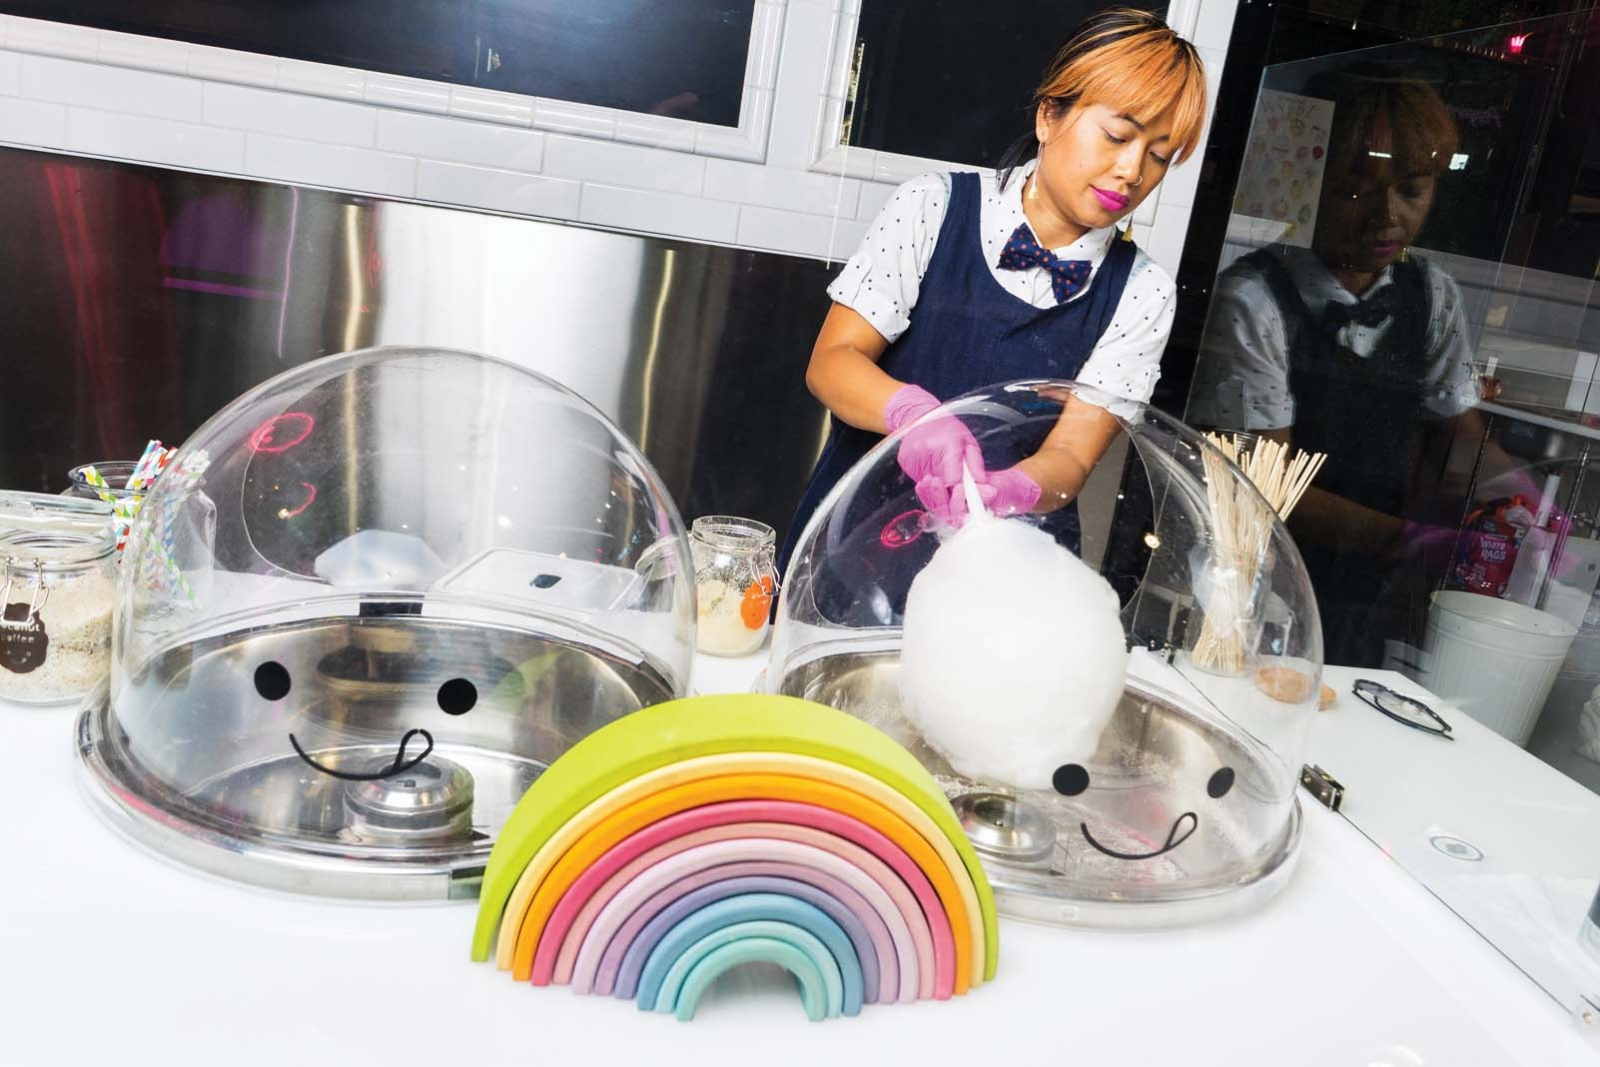 Soktevy Phann-Smith spinning cotton candy.